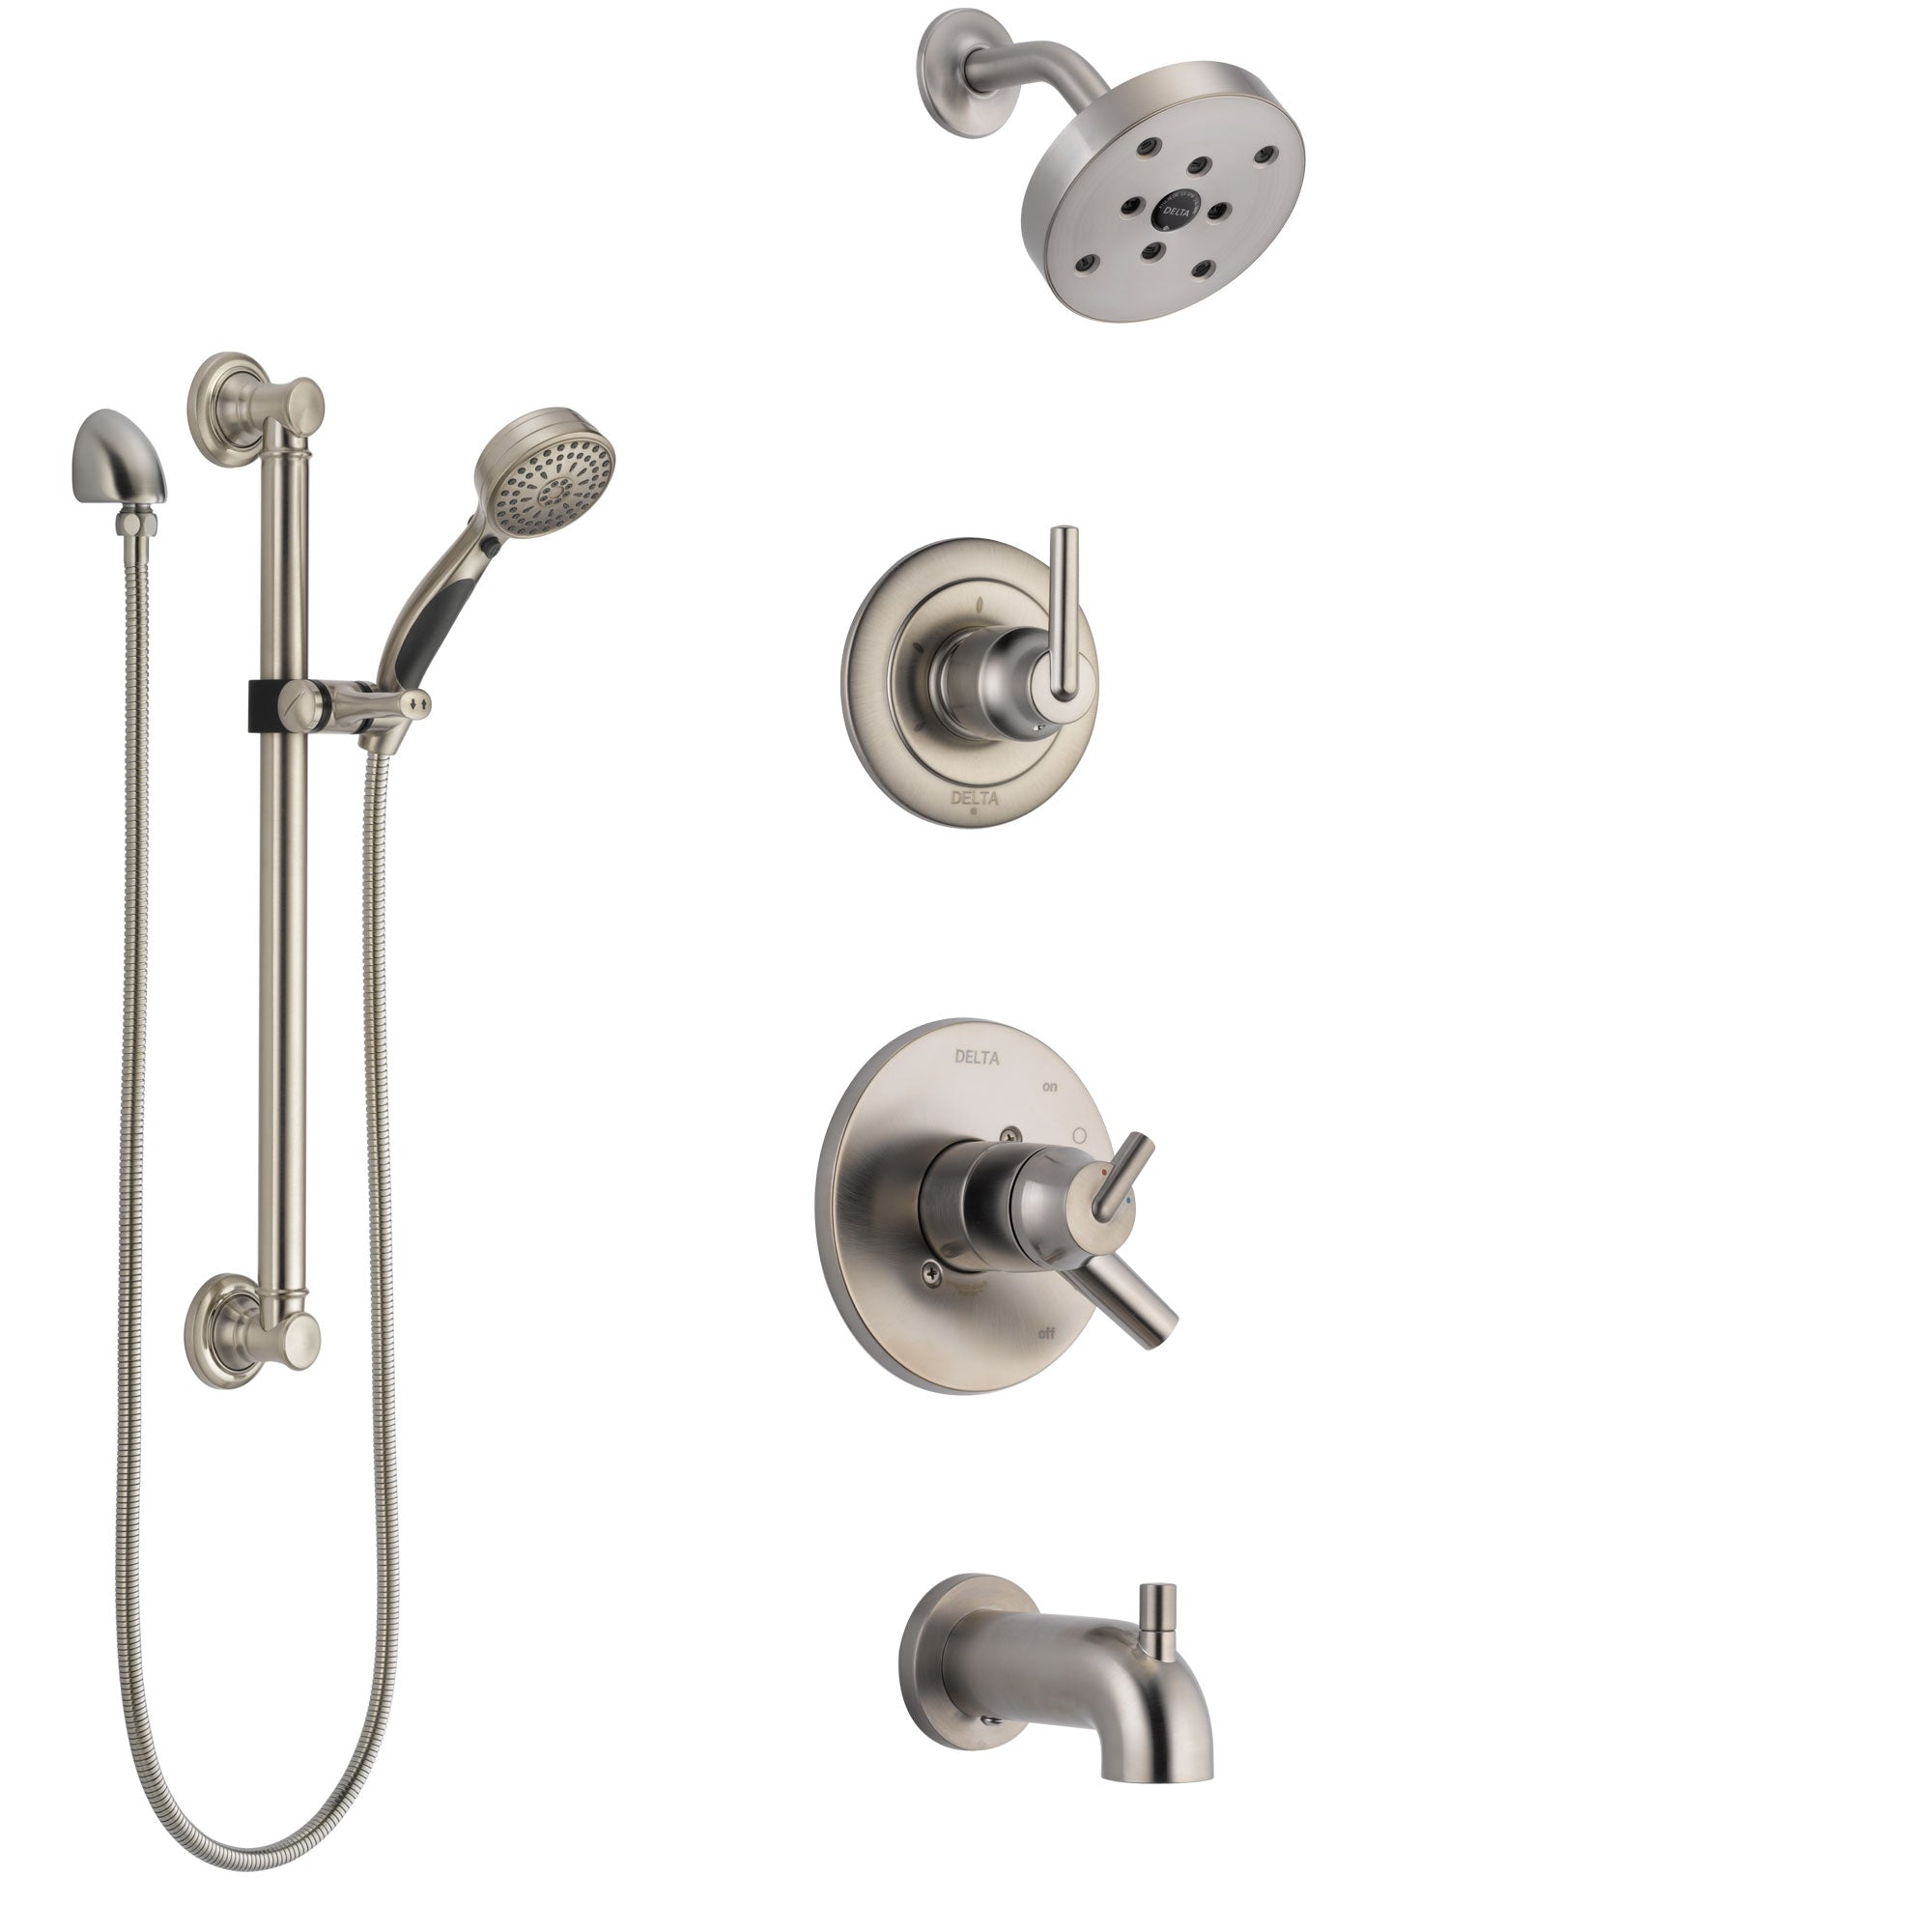 Delta Trinsic Stainless Steel Finish Tub and Shower System with Dual Control Handle, Diverter, Showerhead, and Hand Shower with Grab Bar SS17459SS3